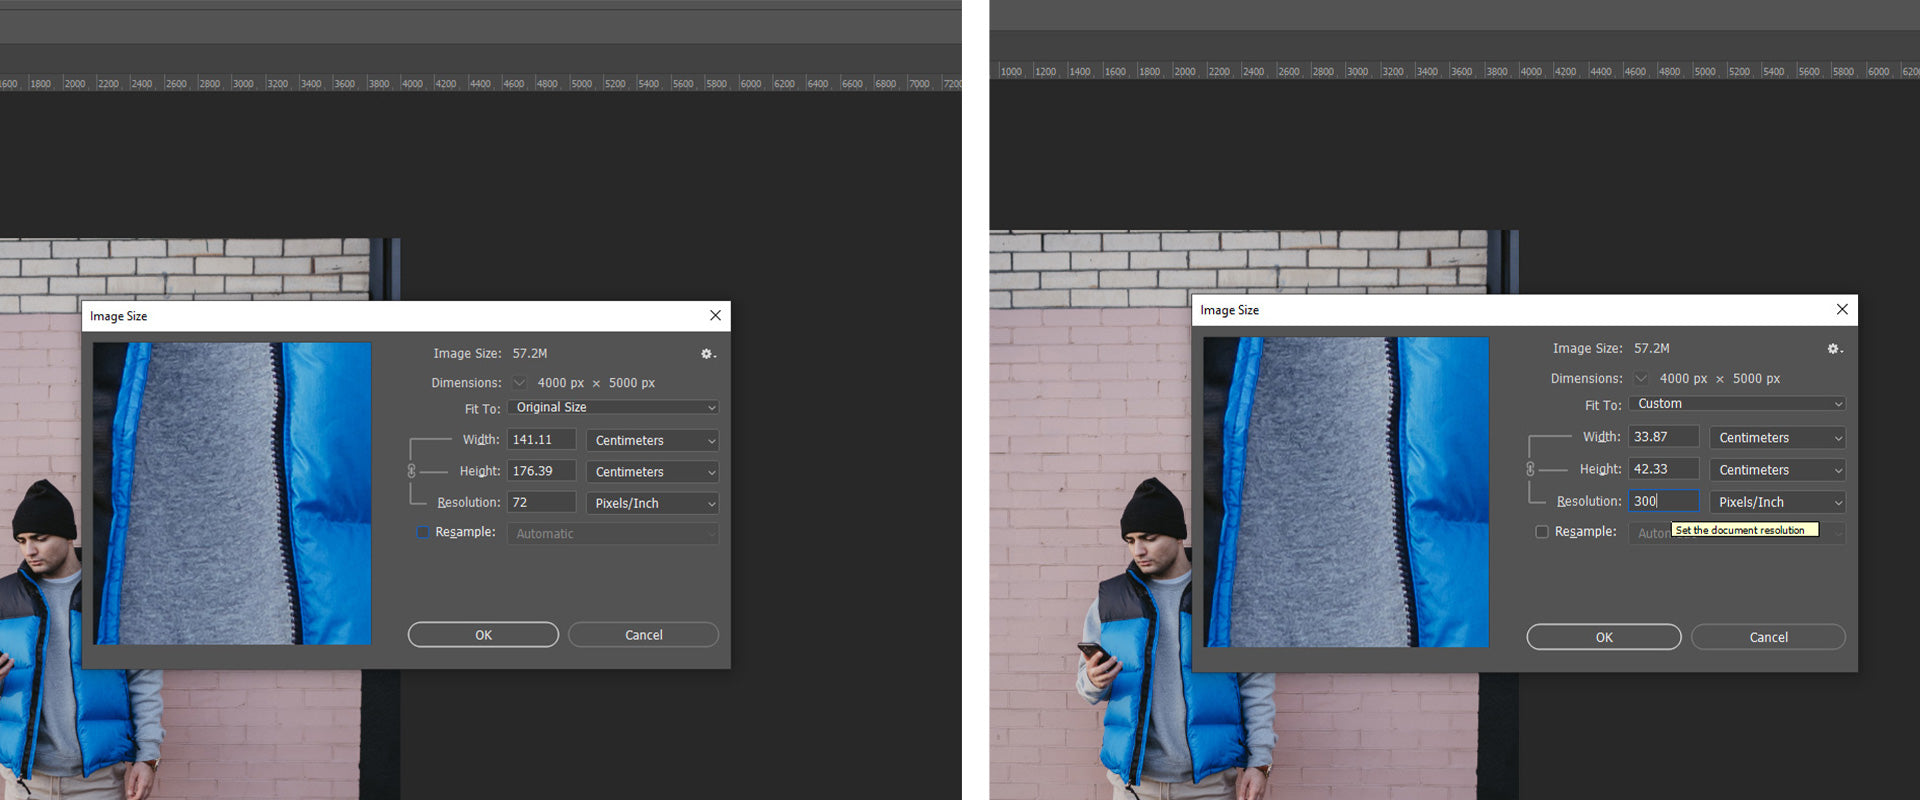 Image size menu in Photoshop.